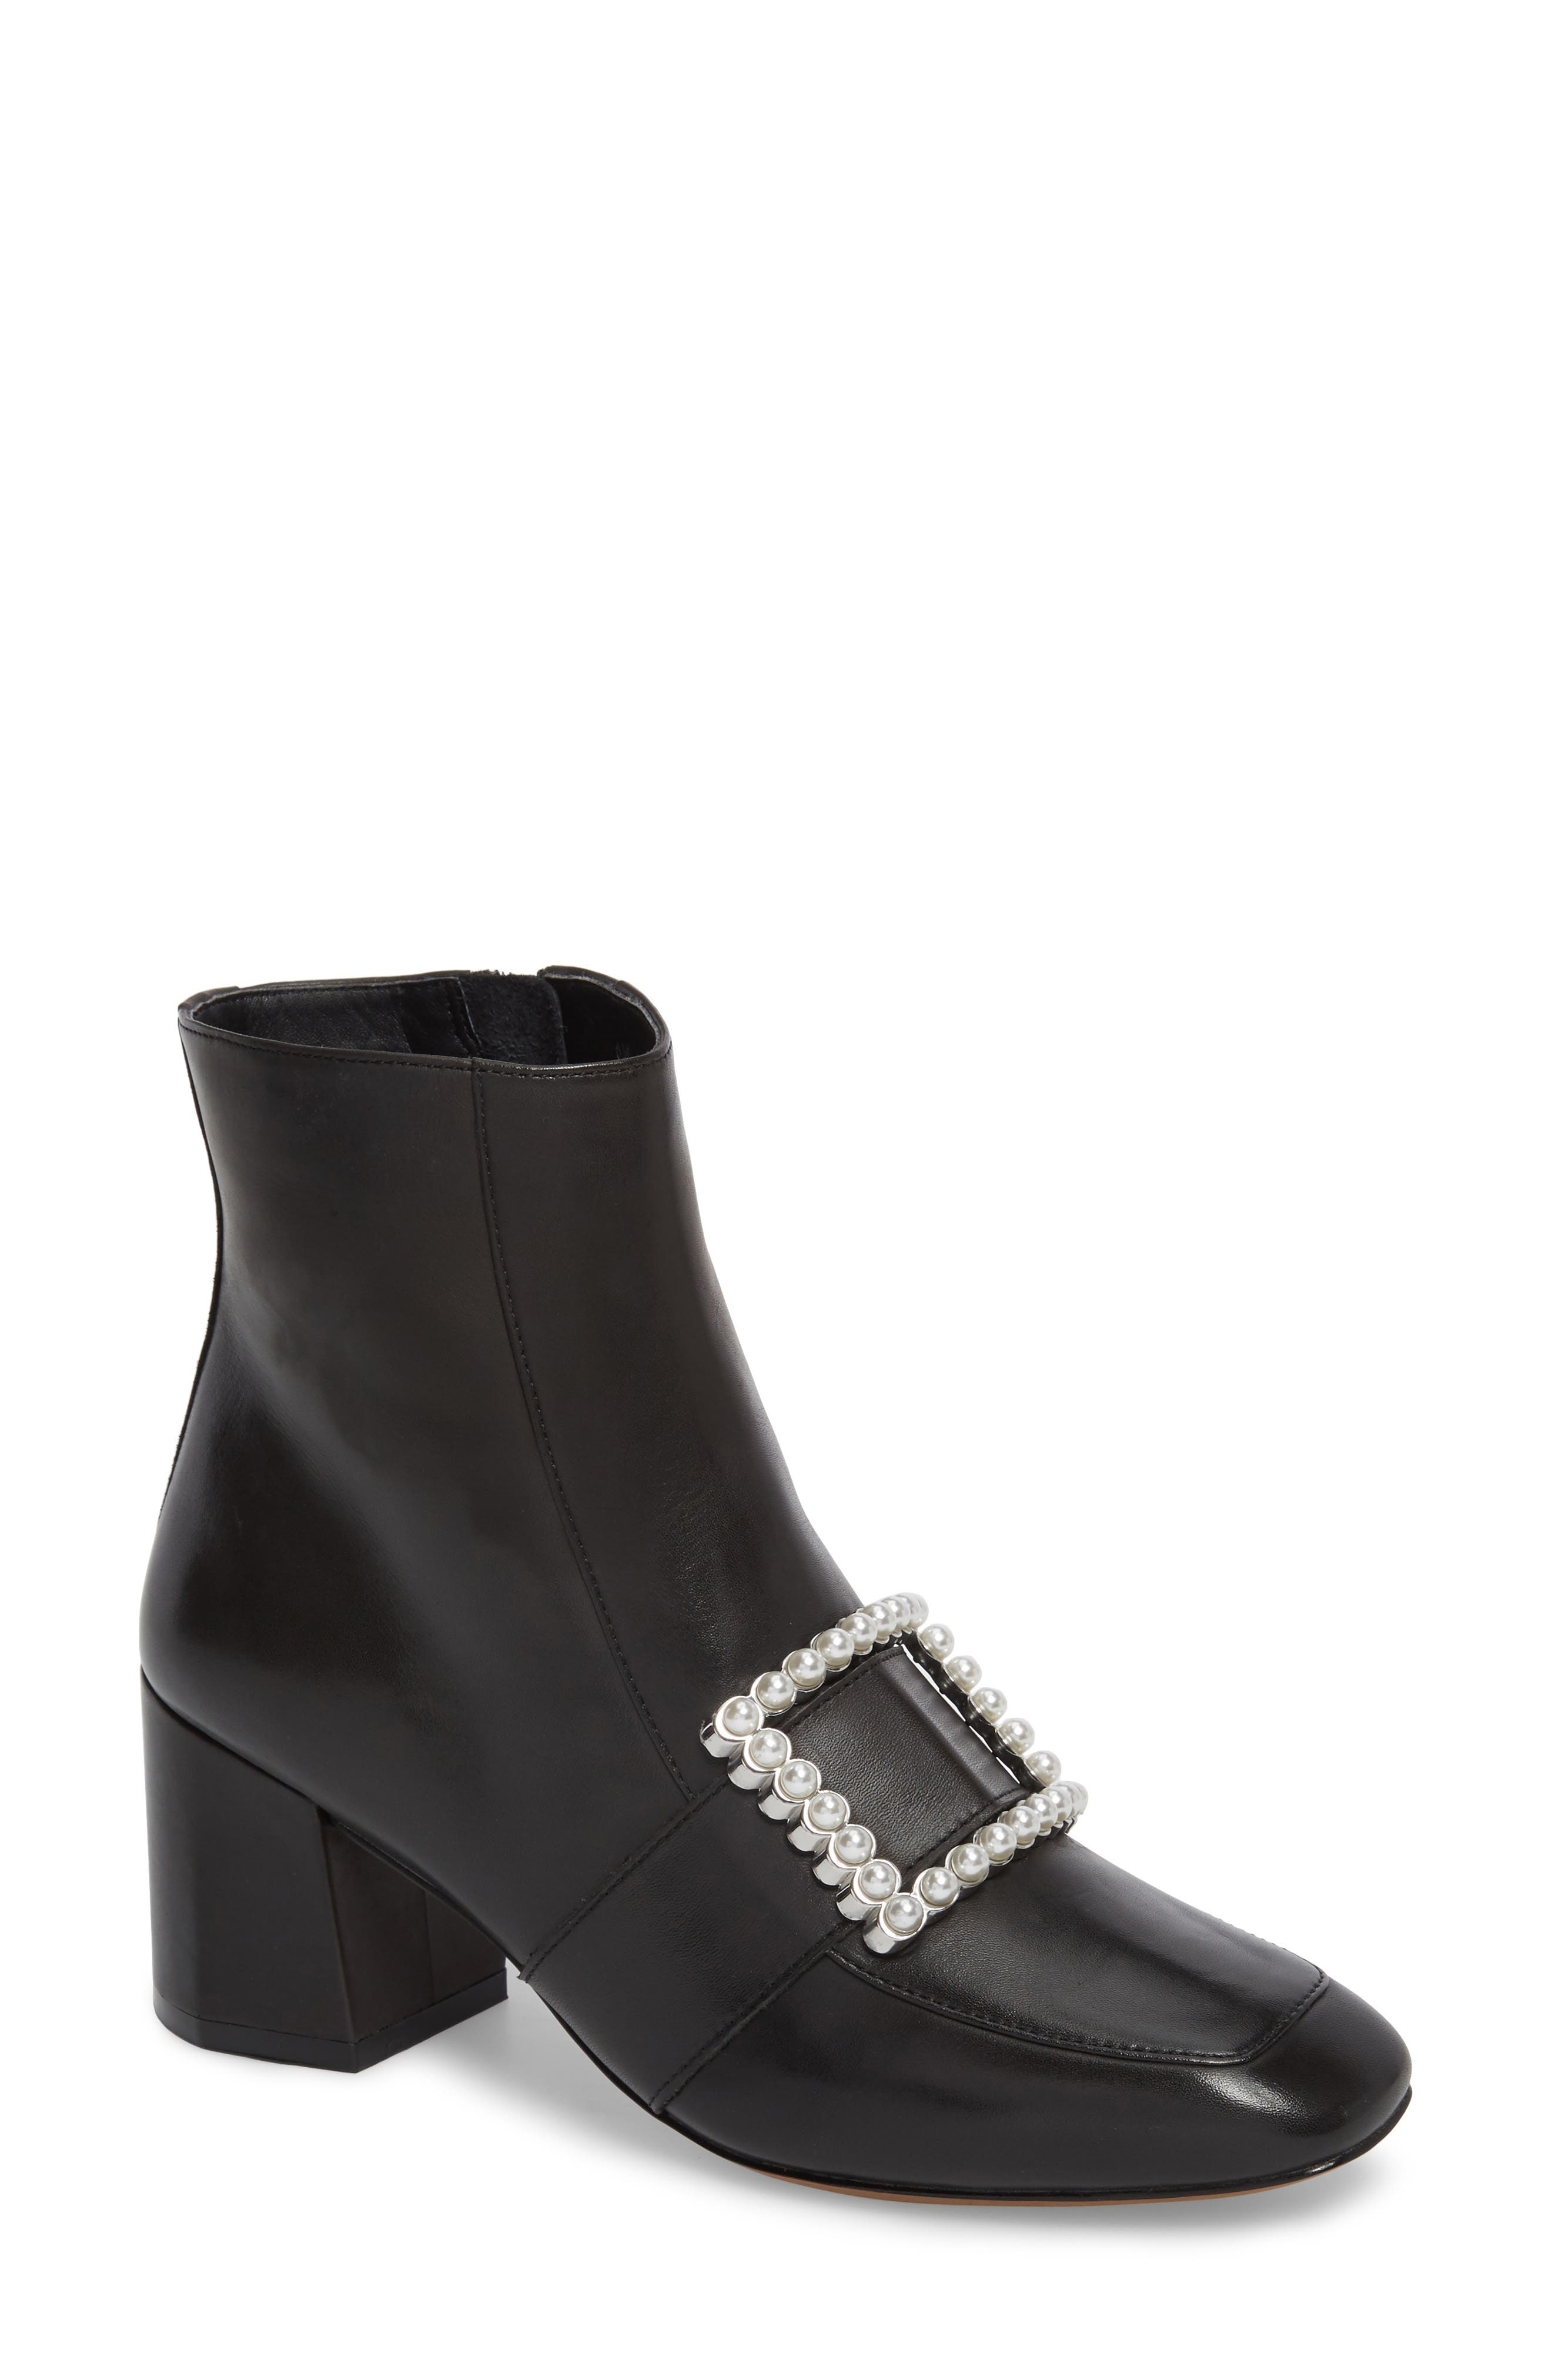 Main Image - Linea Paolo Cadence Buckle Bootie (Women)